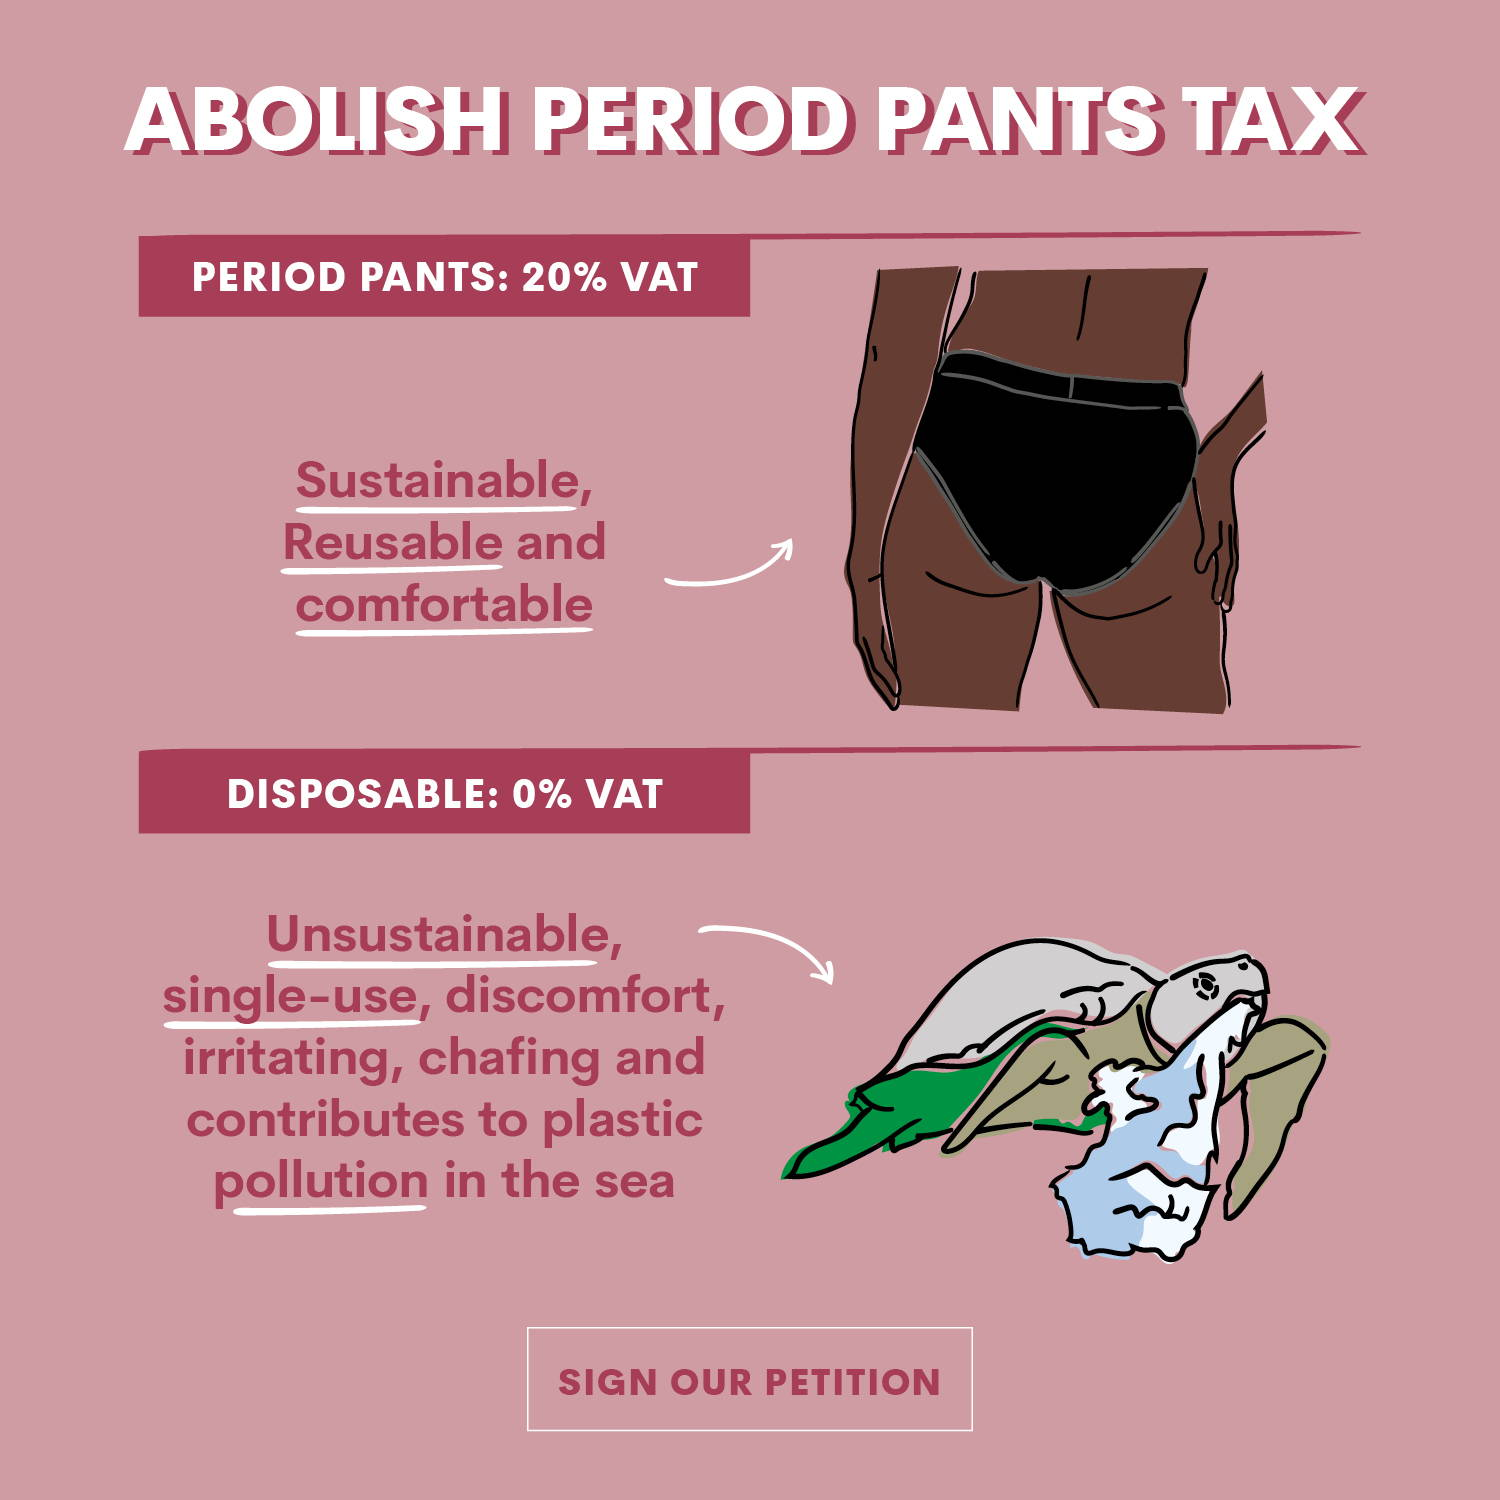 wuka campaign to end period pants tax